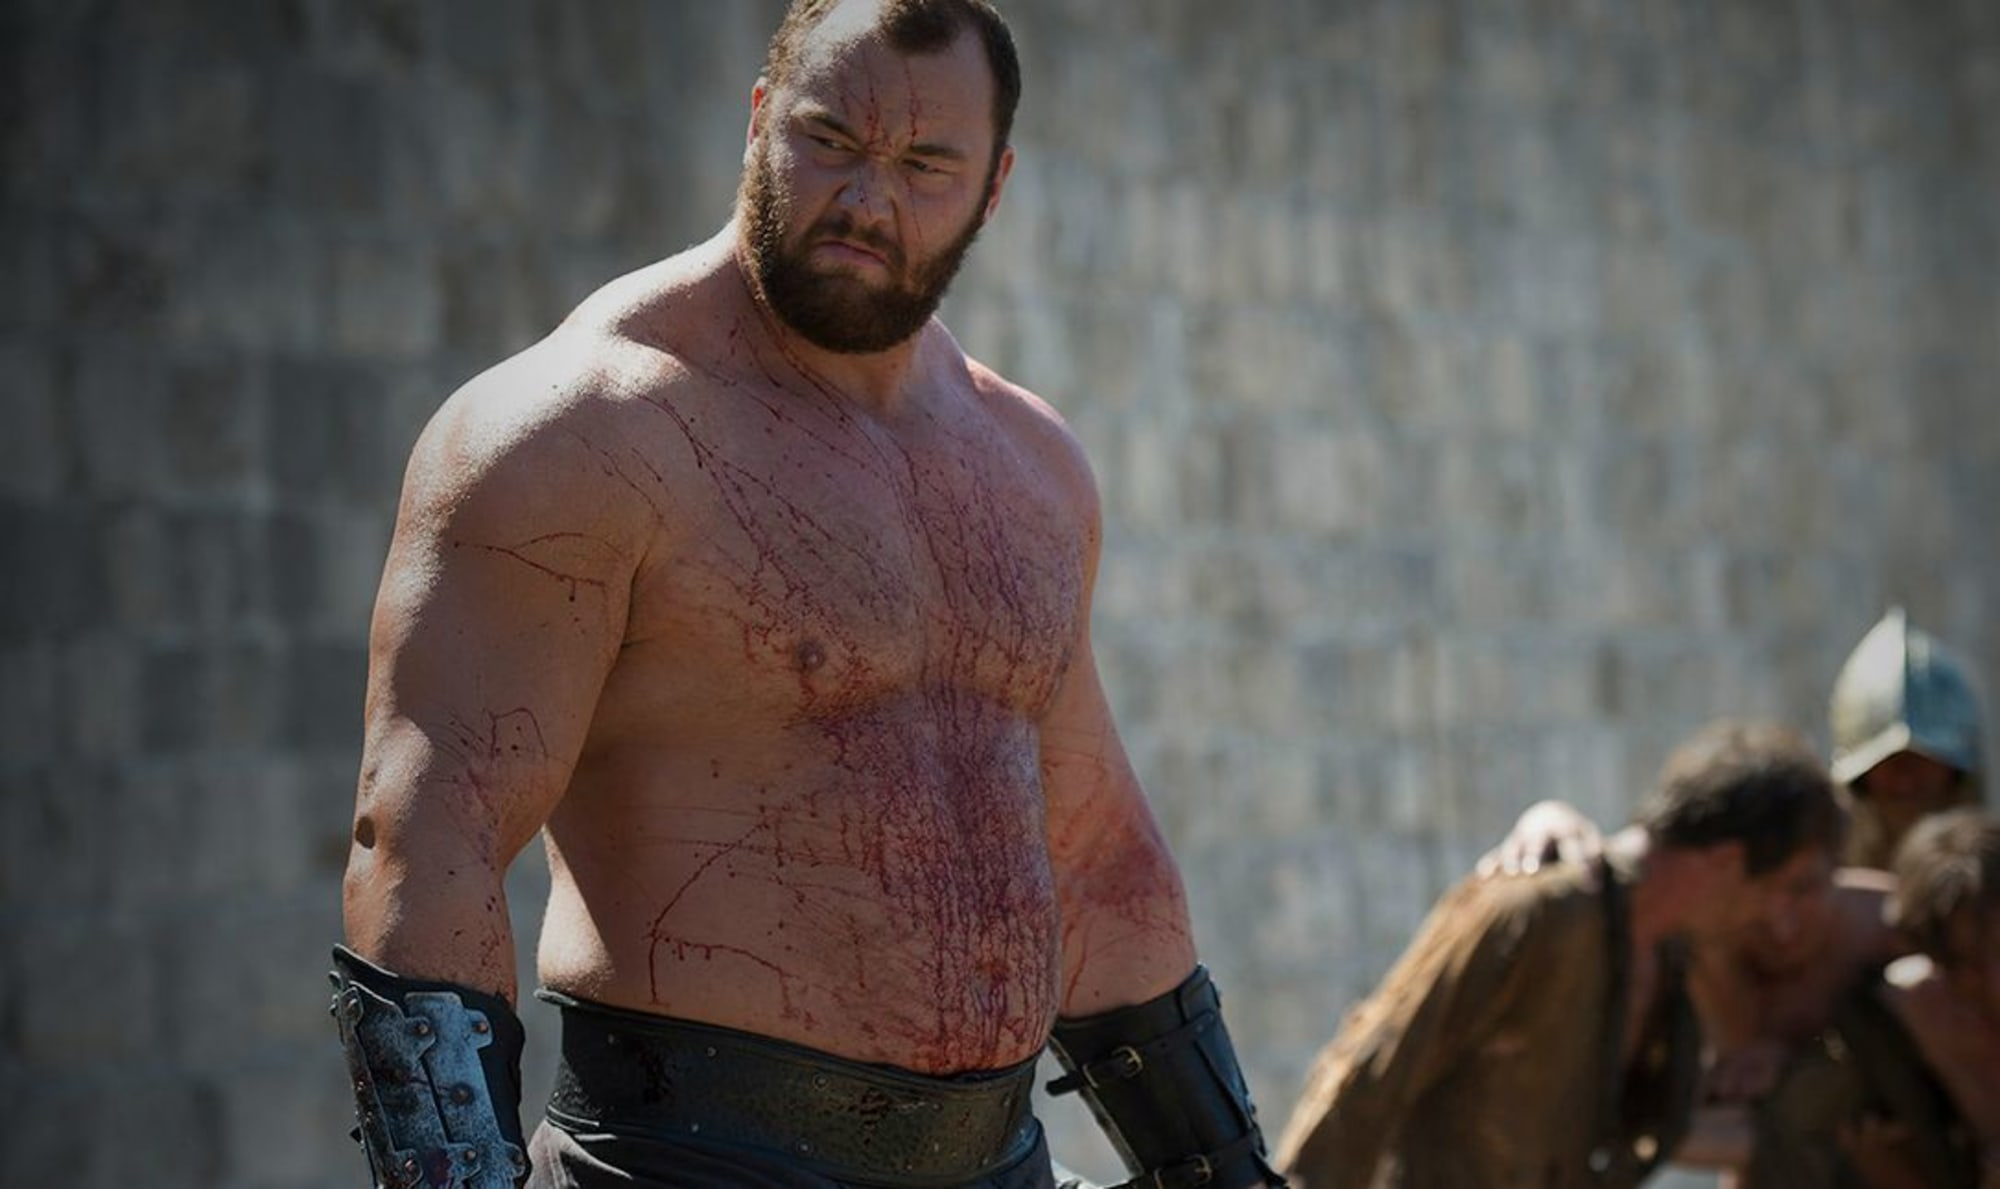 The Mountain from Game of Thrones gets in drag and dances, and more stuff